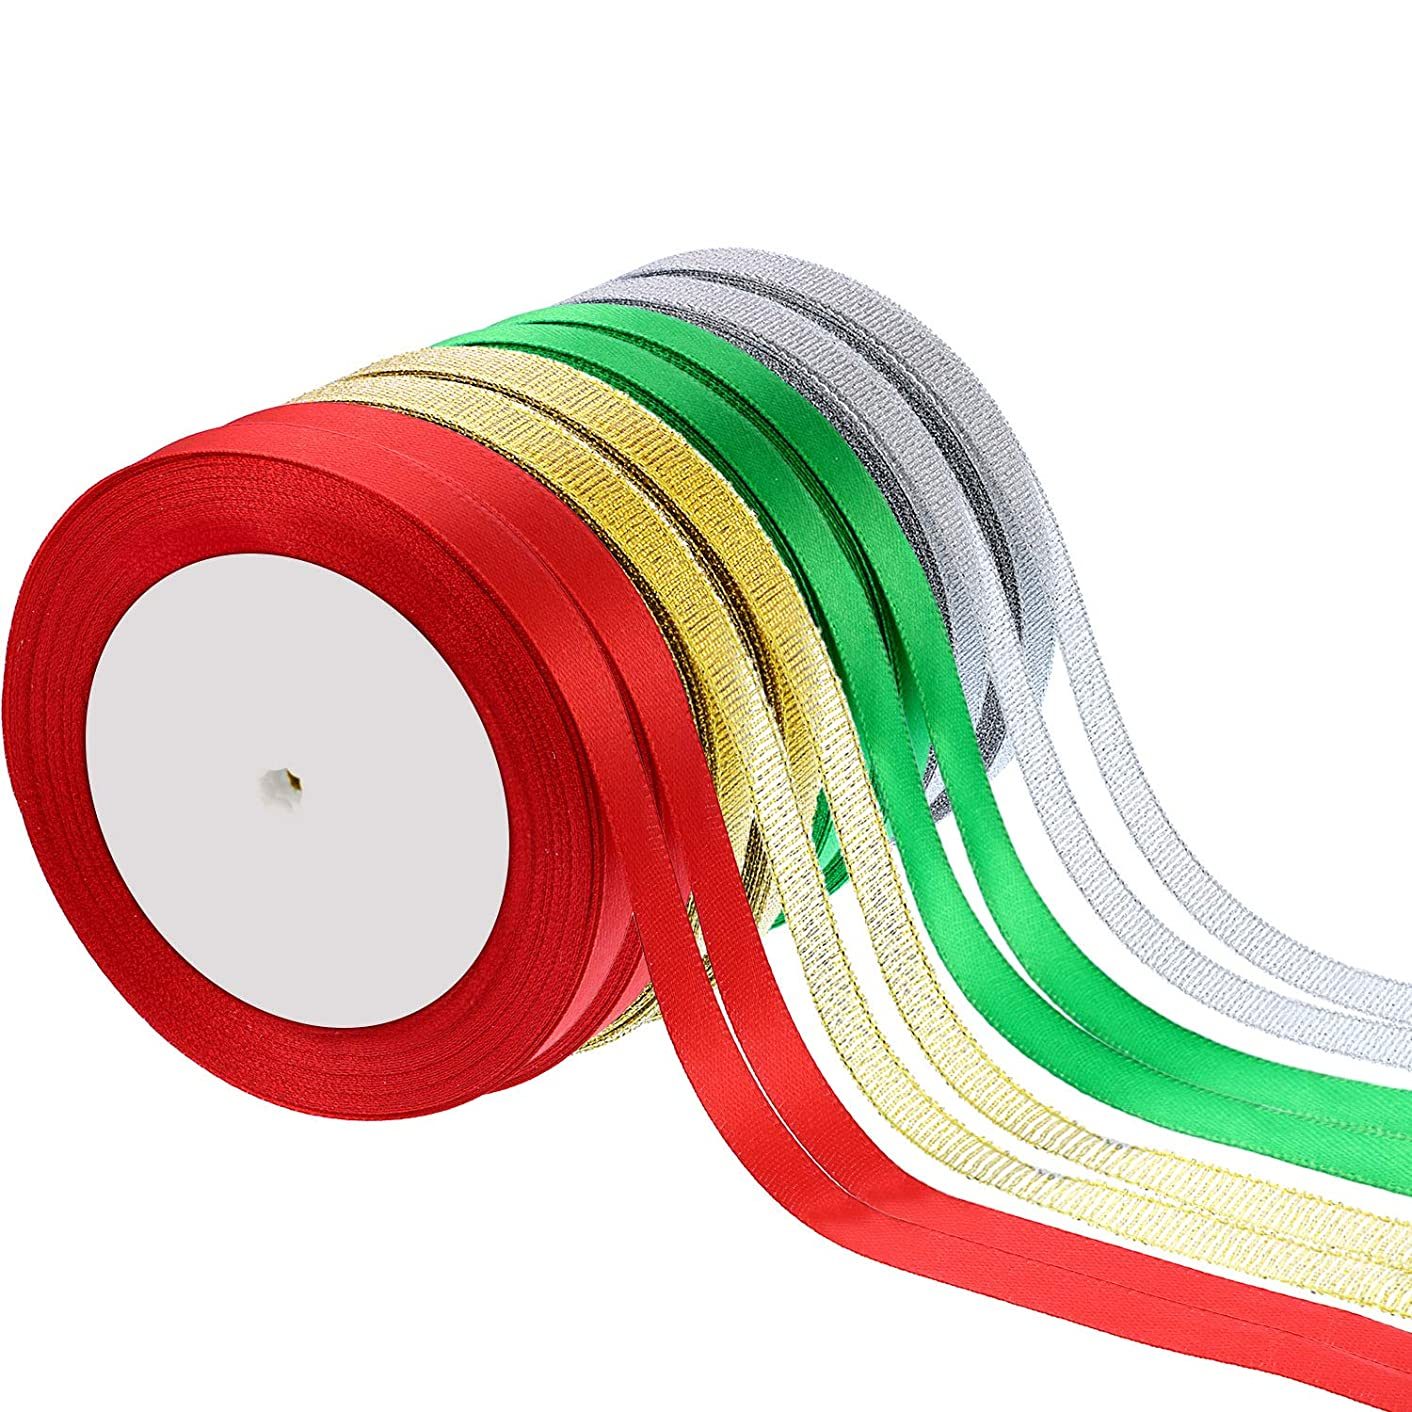 Sumind 8 Rolls 200 Yards Total 10 mm Satin Ribbon Roll Shimmer Sheer Organza Ribbon for Valentine's Day Party Wedding DIY Decoration (Color A)